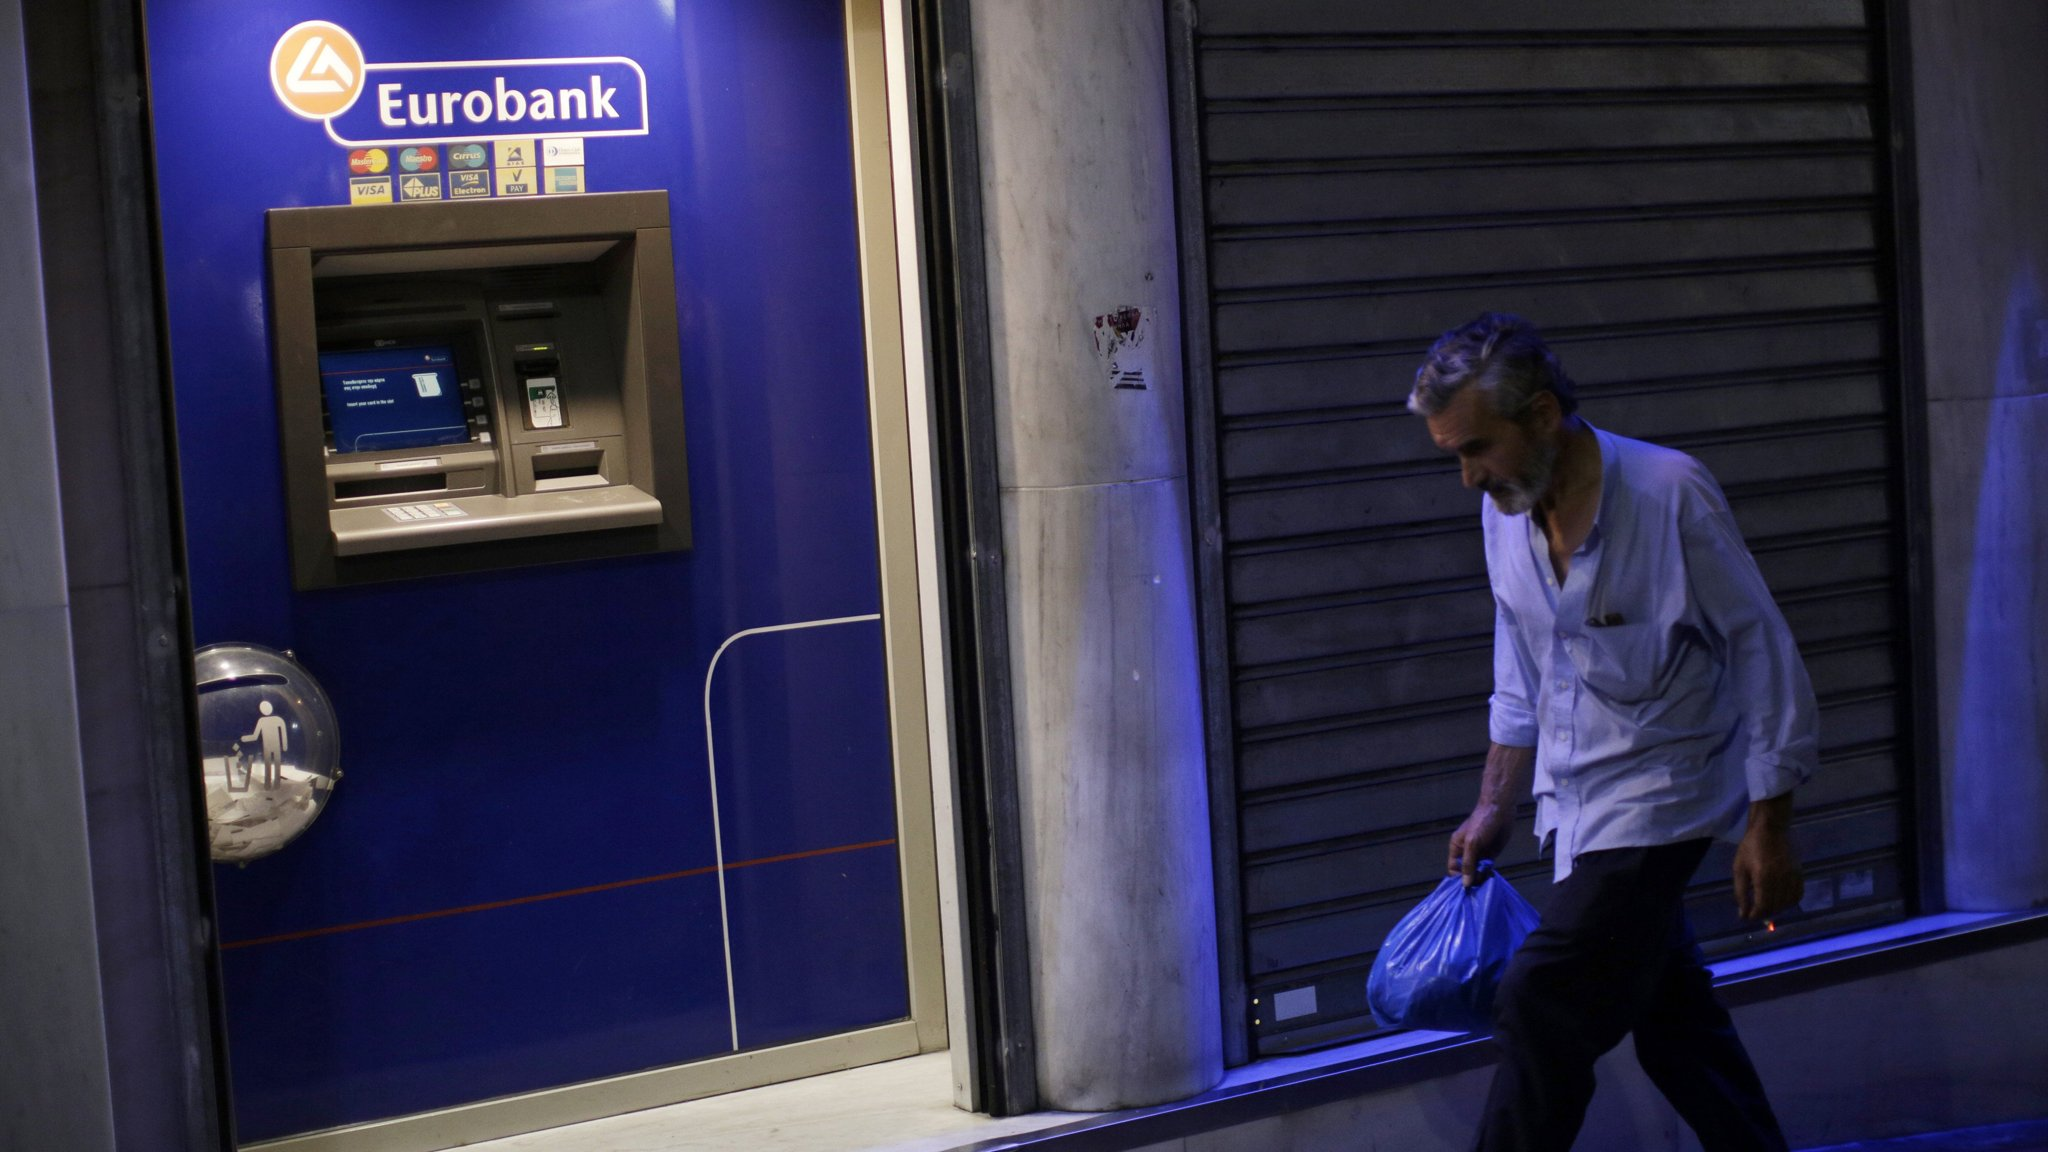 Greece's Eurobank to sell debt eligible for purchase by ECB